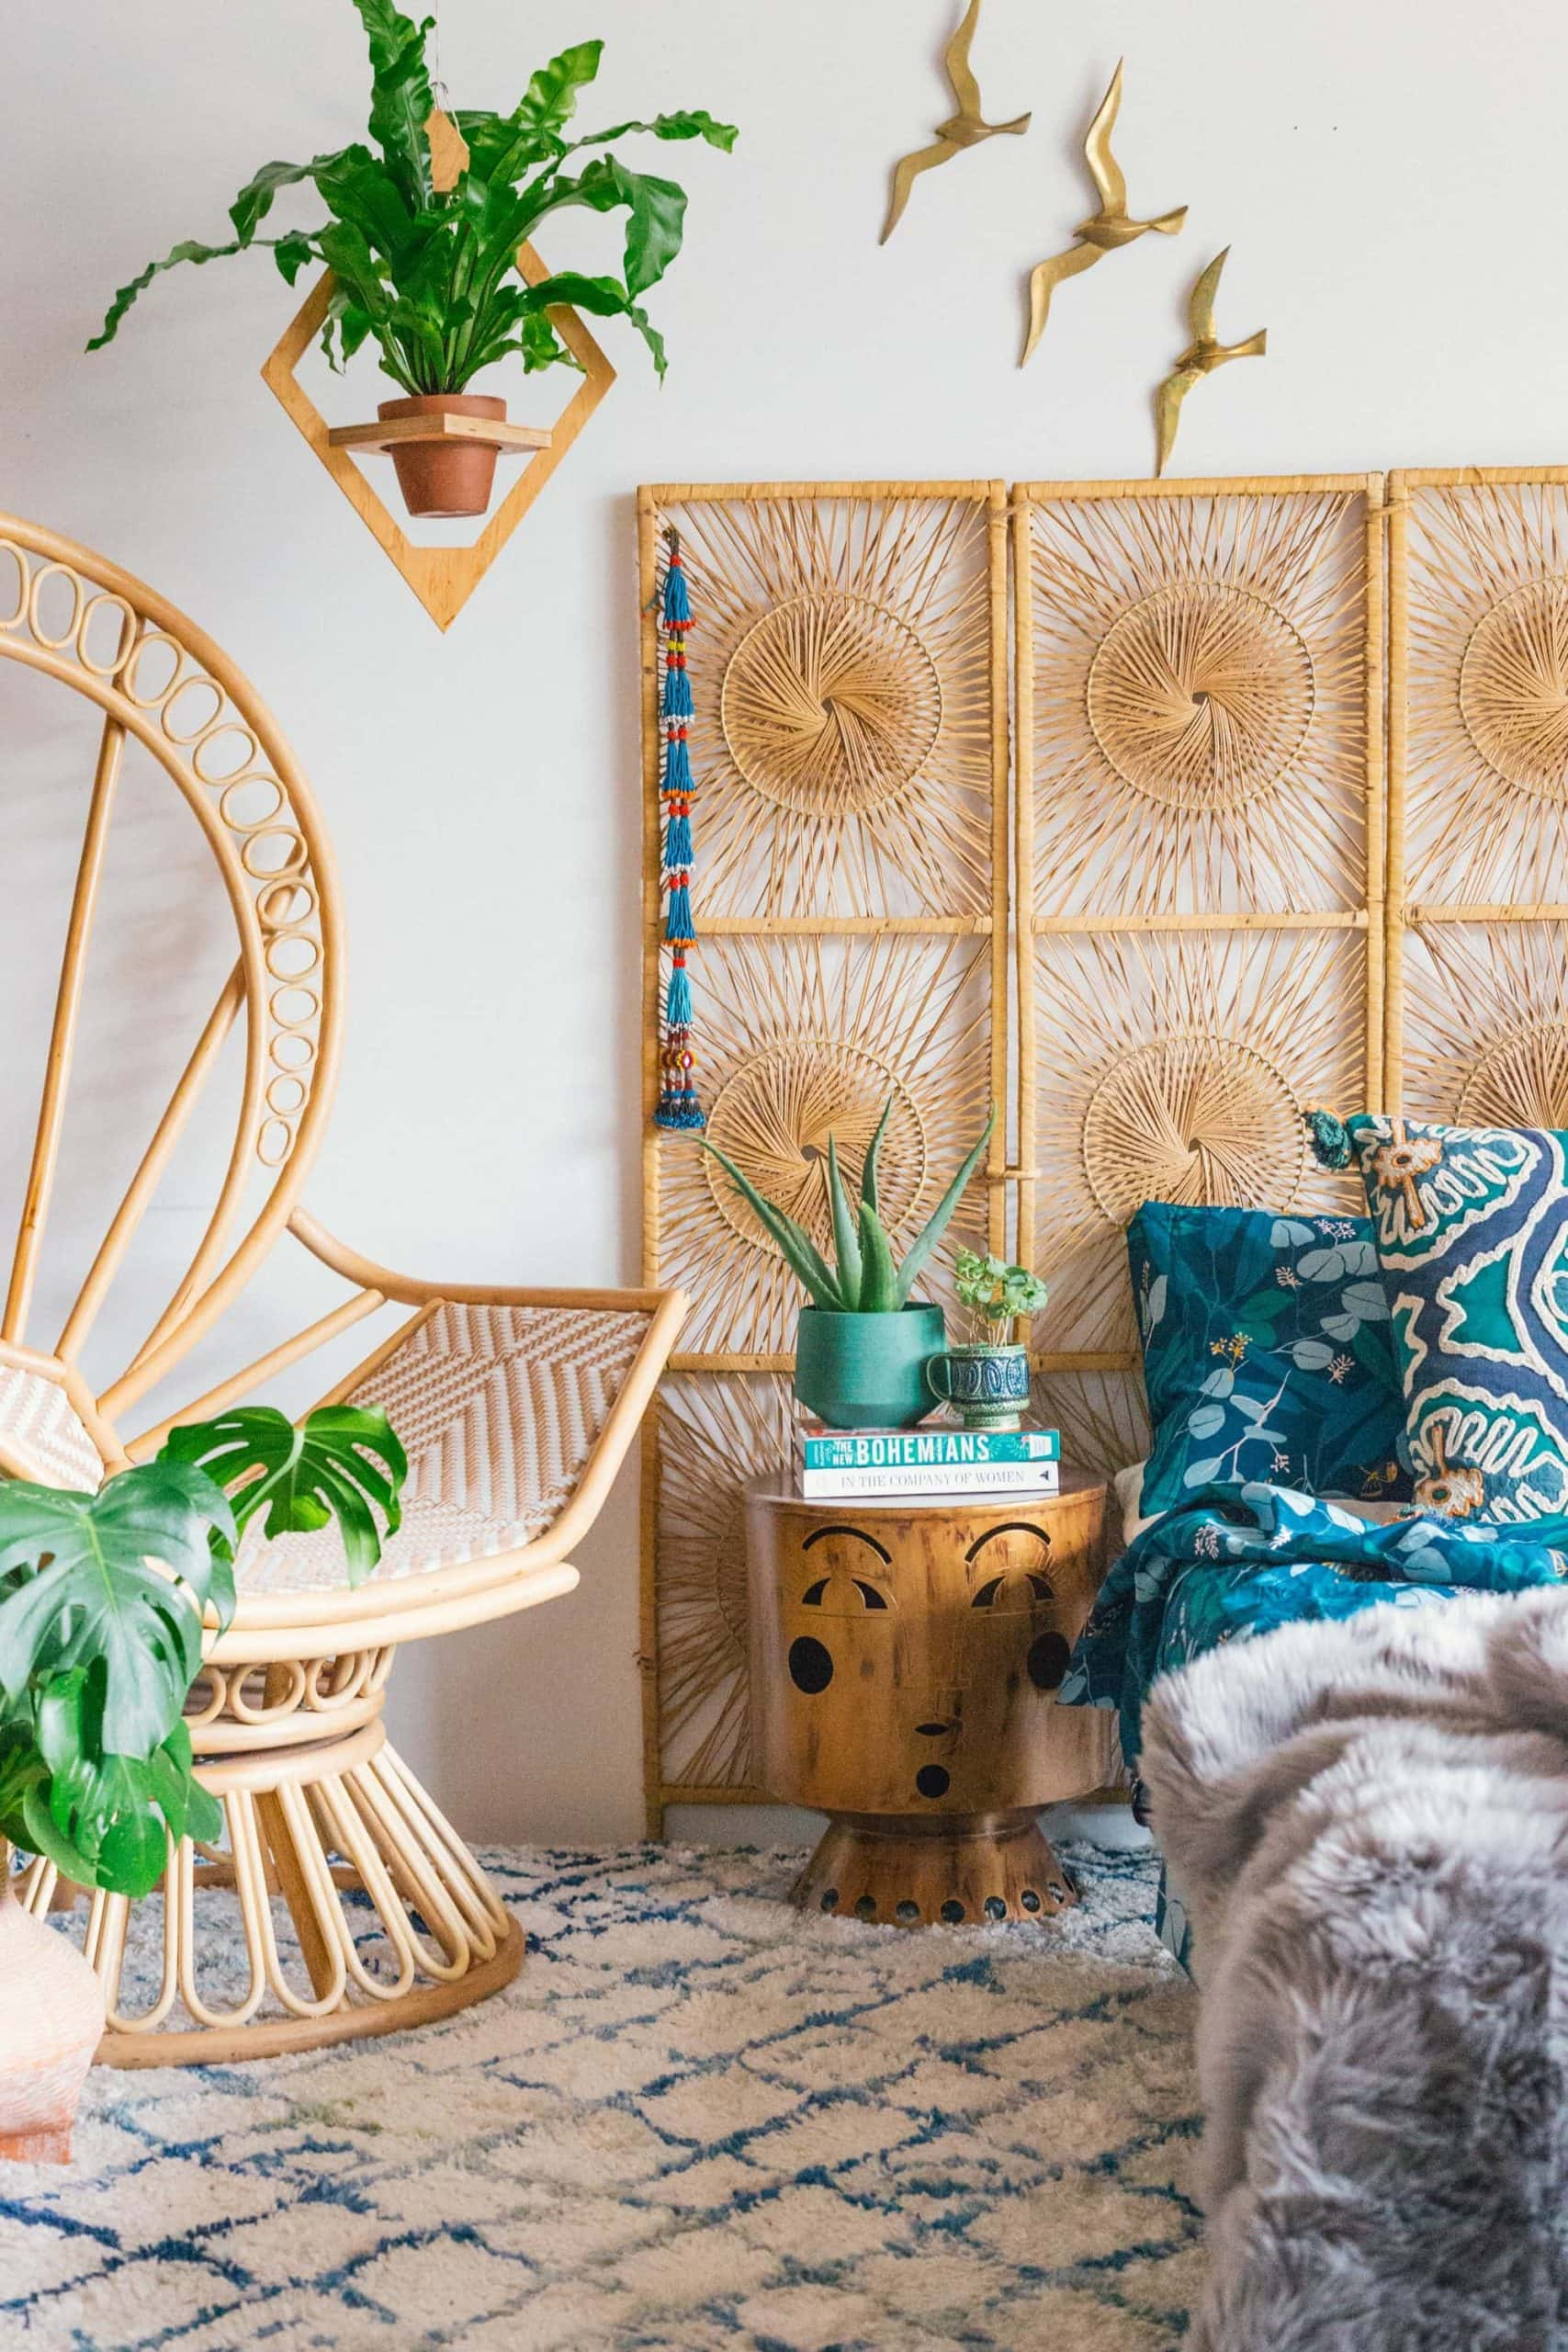 boho screen as headboard in boho bedroom with bamboo screen art